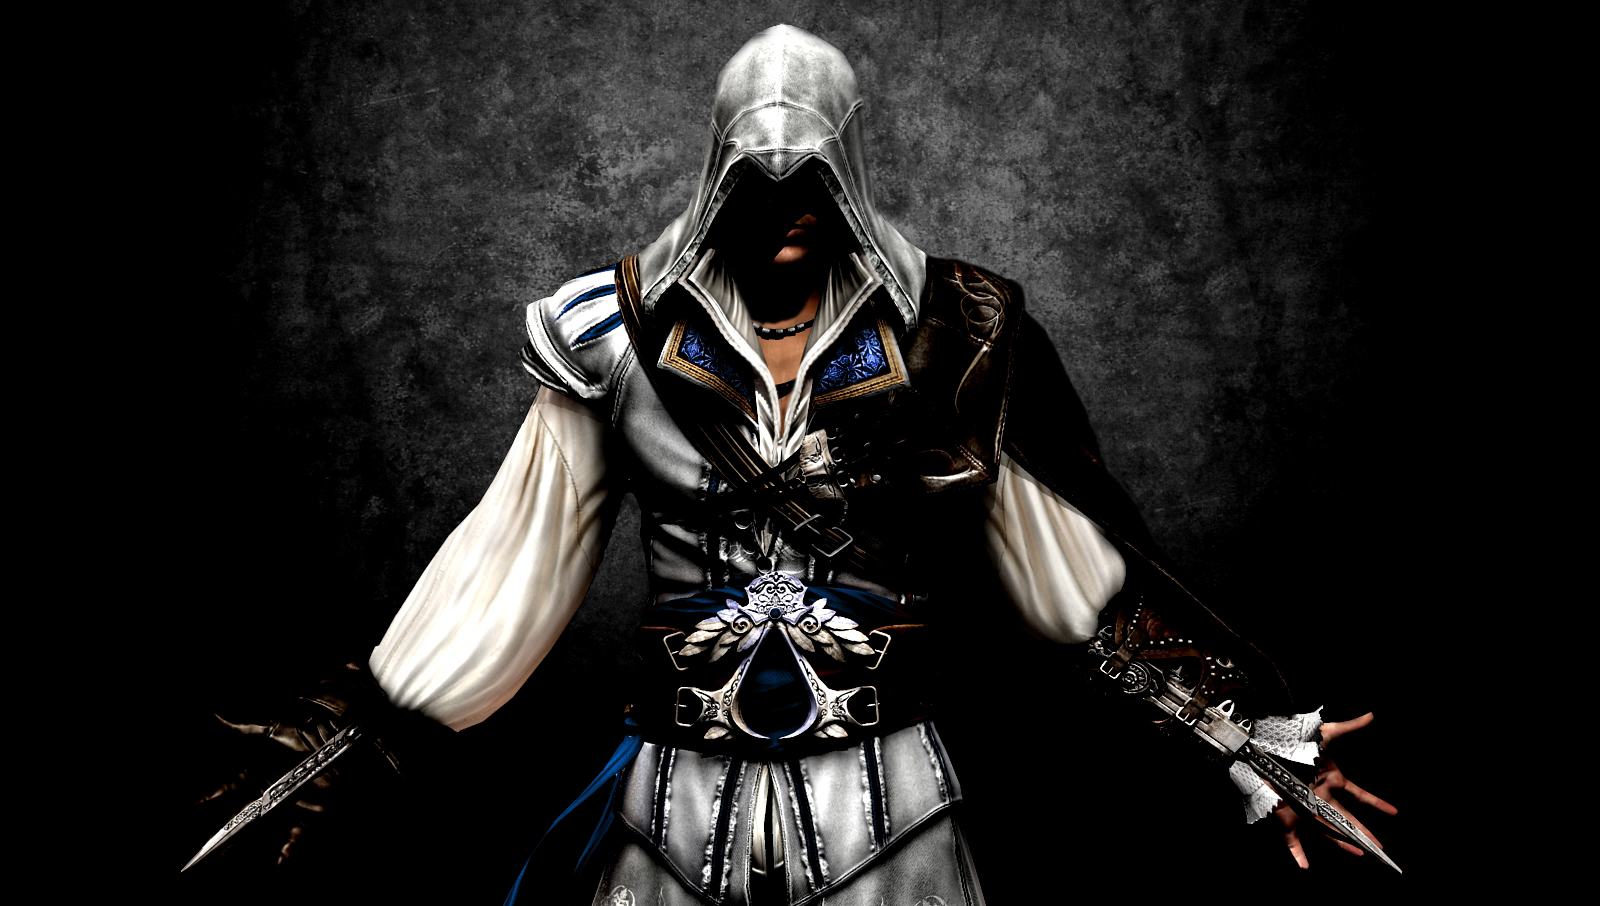 Assassin's Creed II Wallpaper And Background Image